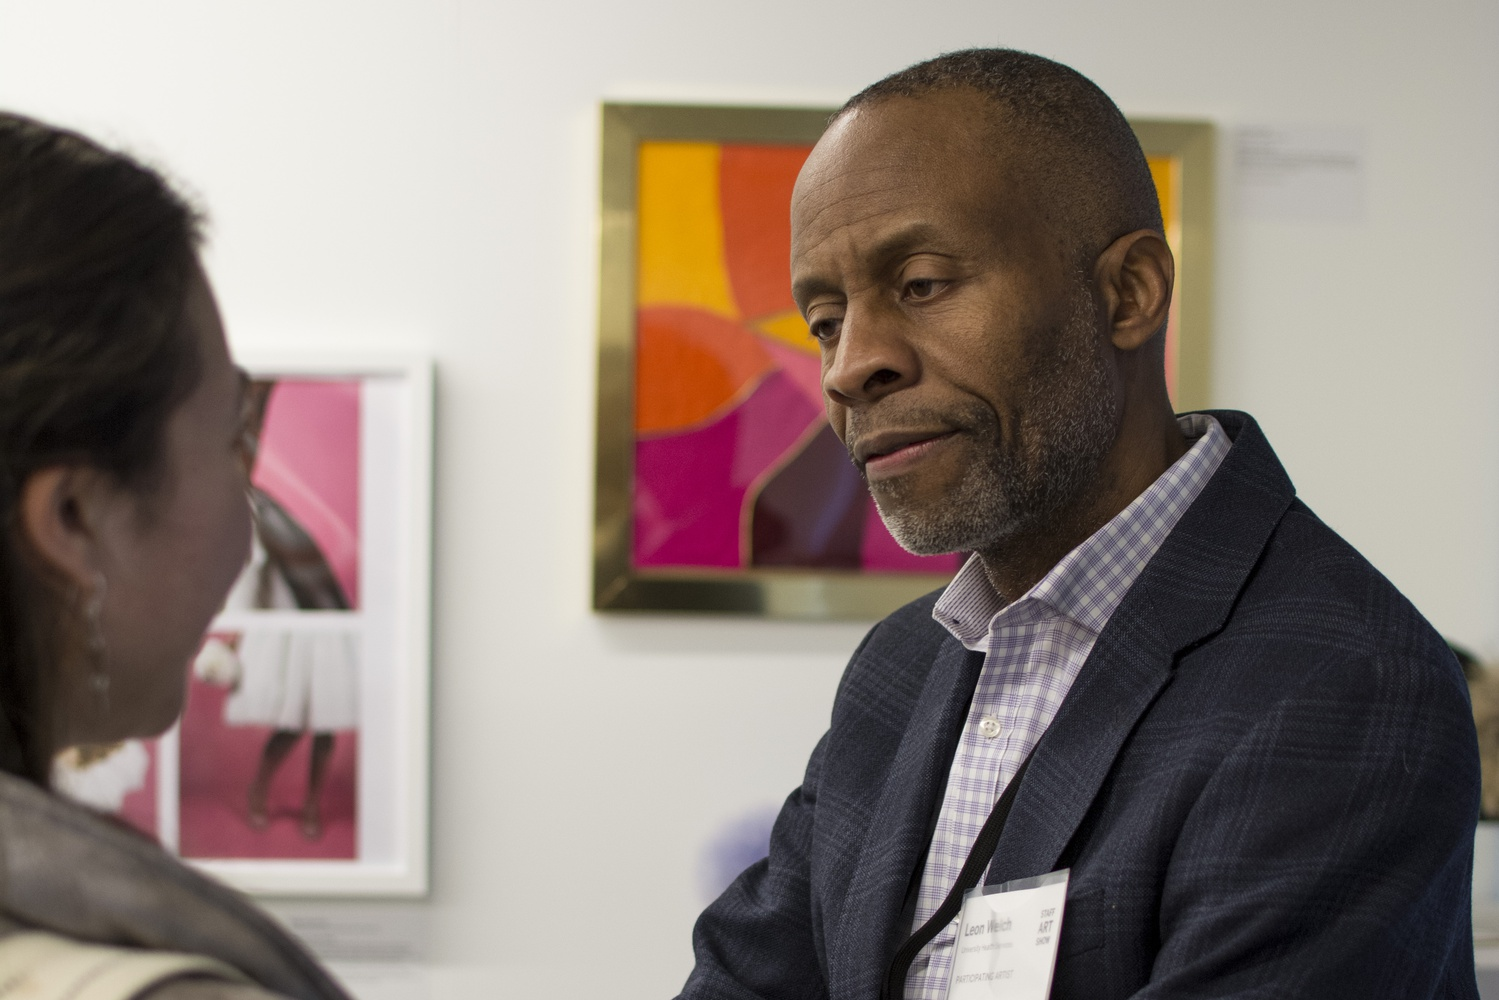 Leon C. Welch, an HUHS employee, was one of the participating artists at the Staff Art Show. He hopes the show will foster more meaningful interaction between staff, students, and faculty.